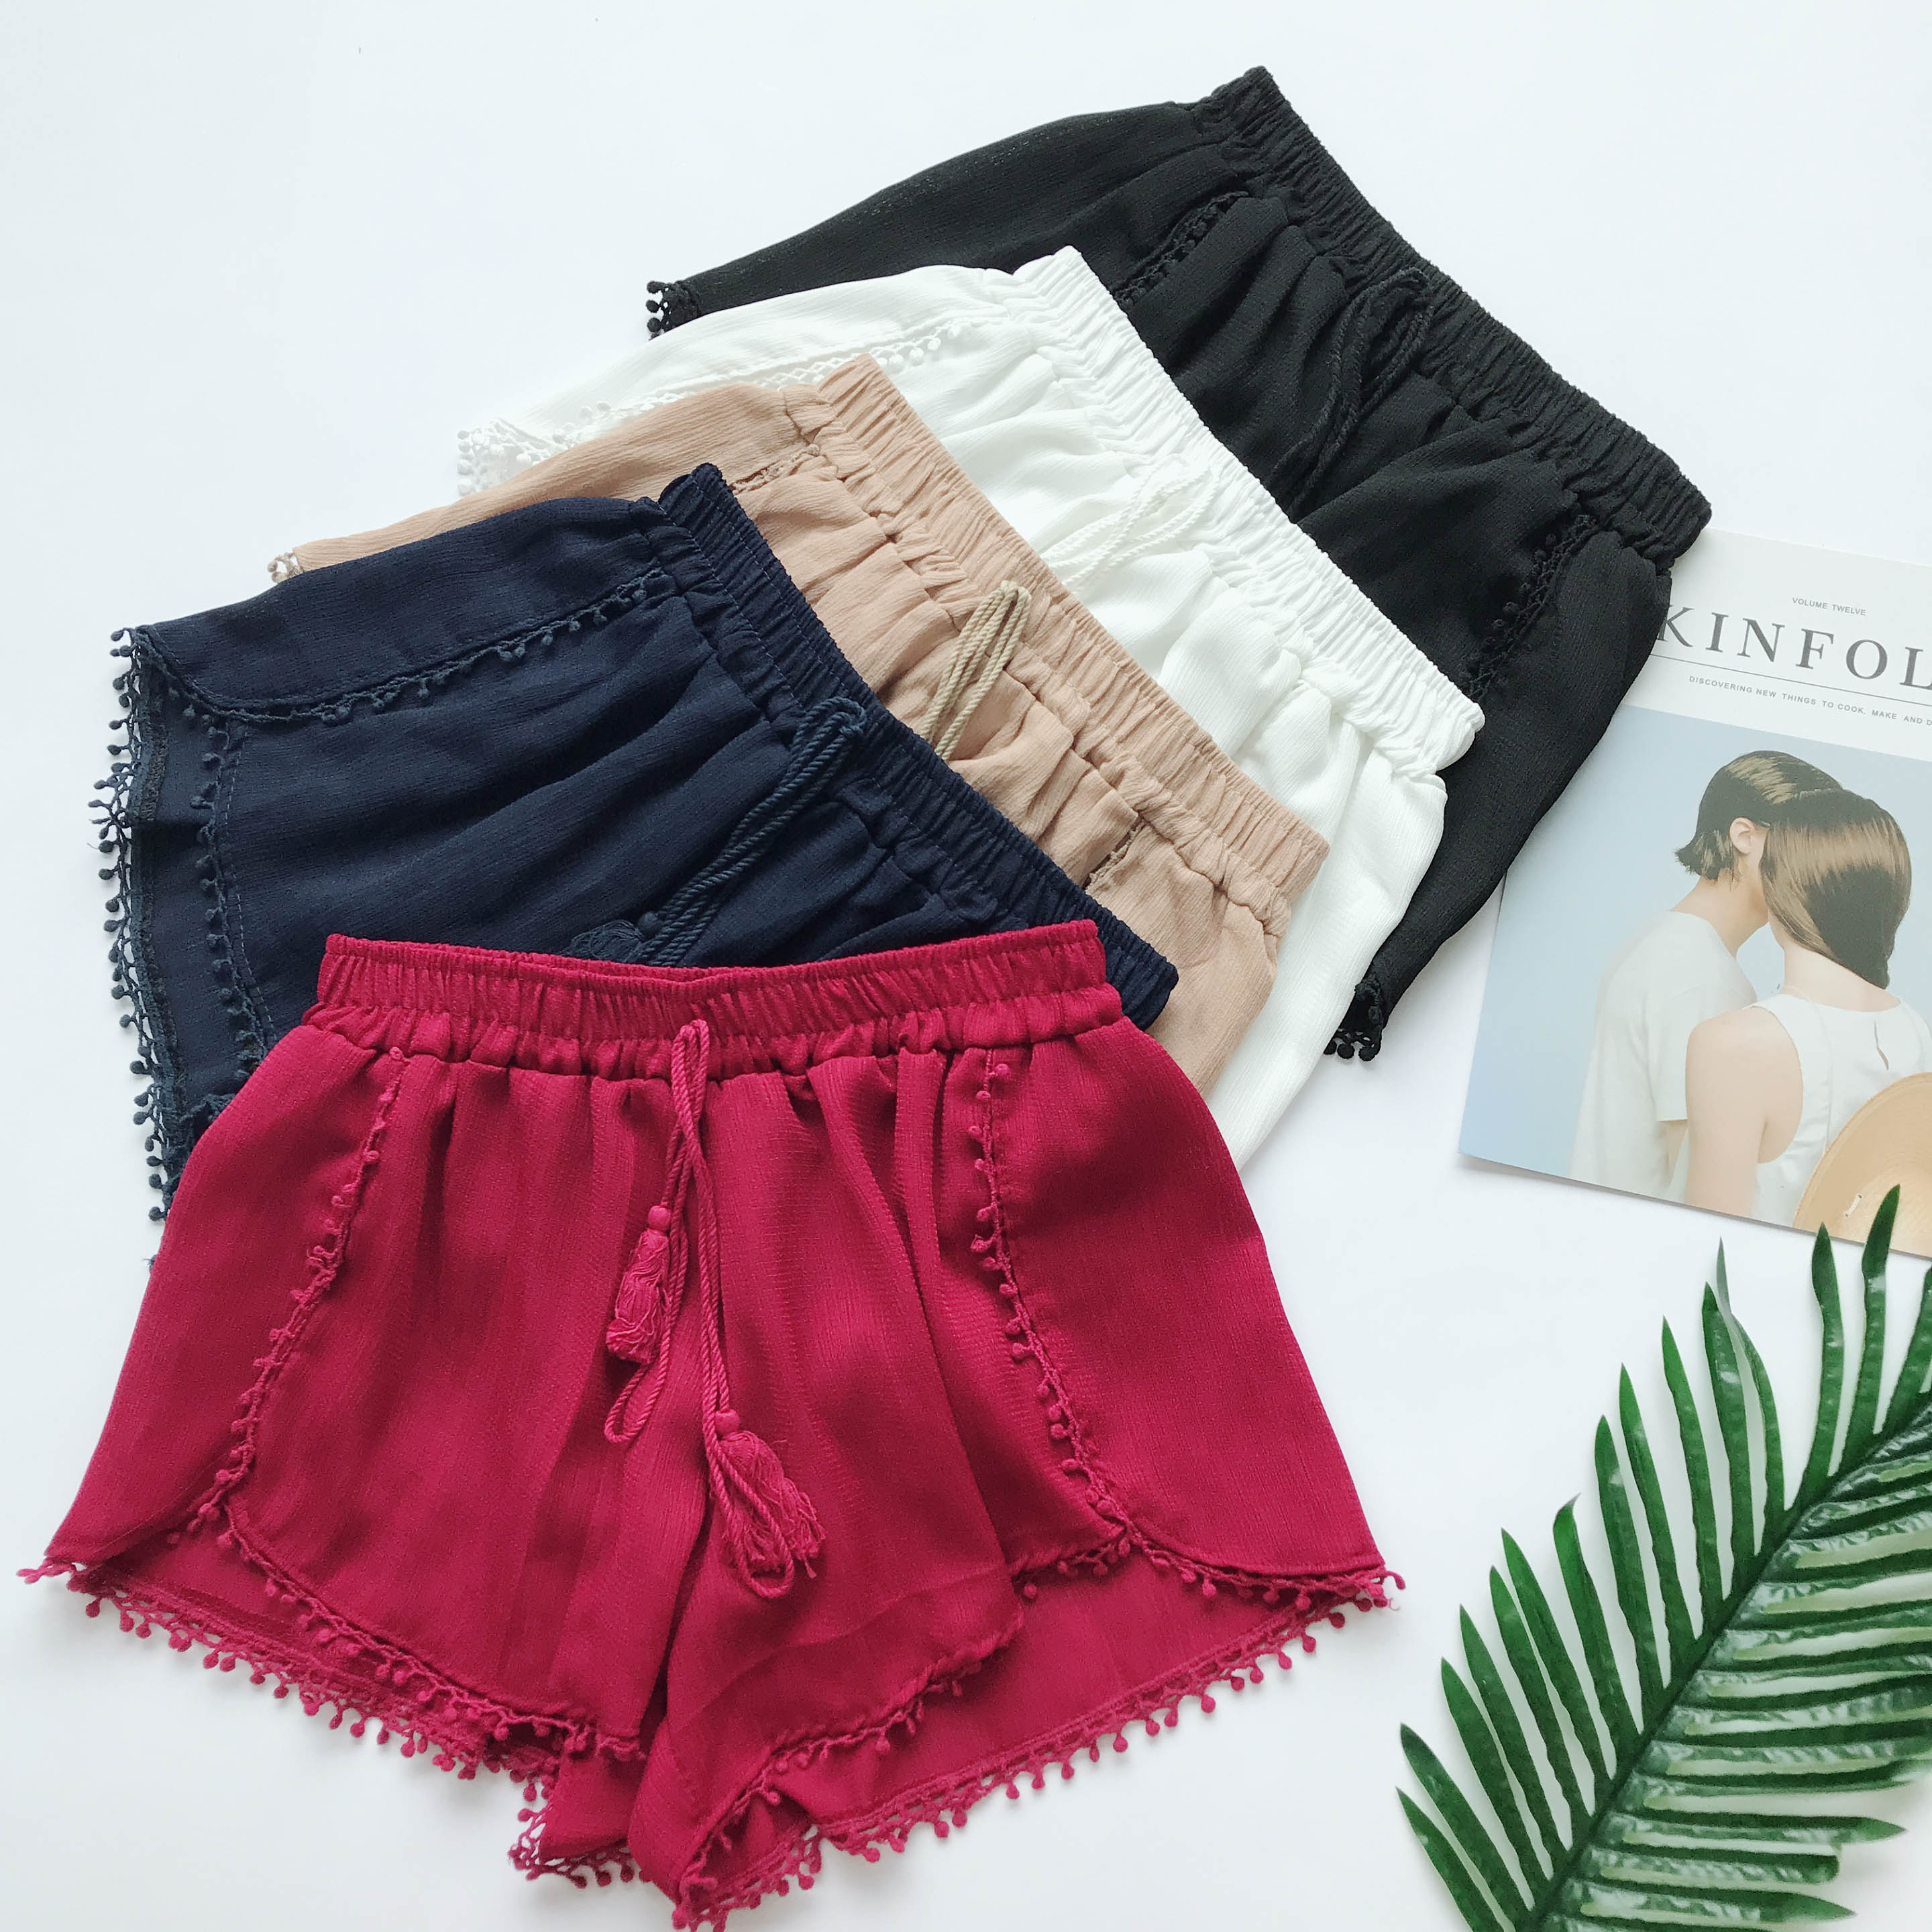 Summer Newest Style Fashion Vintage Elastic High Waist Female Boho Beach Chiffon   Shorts   Women Casual   Shorts   girls   Short   Trousers